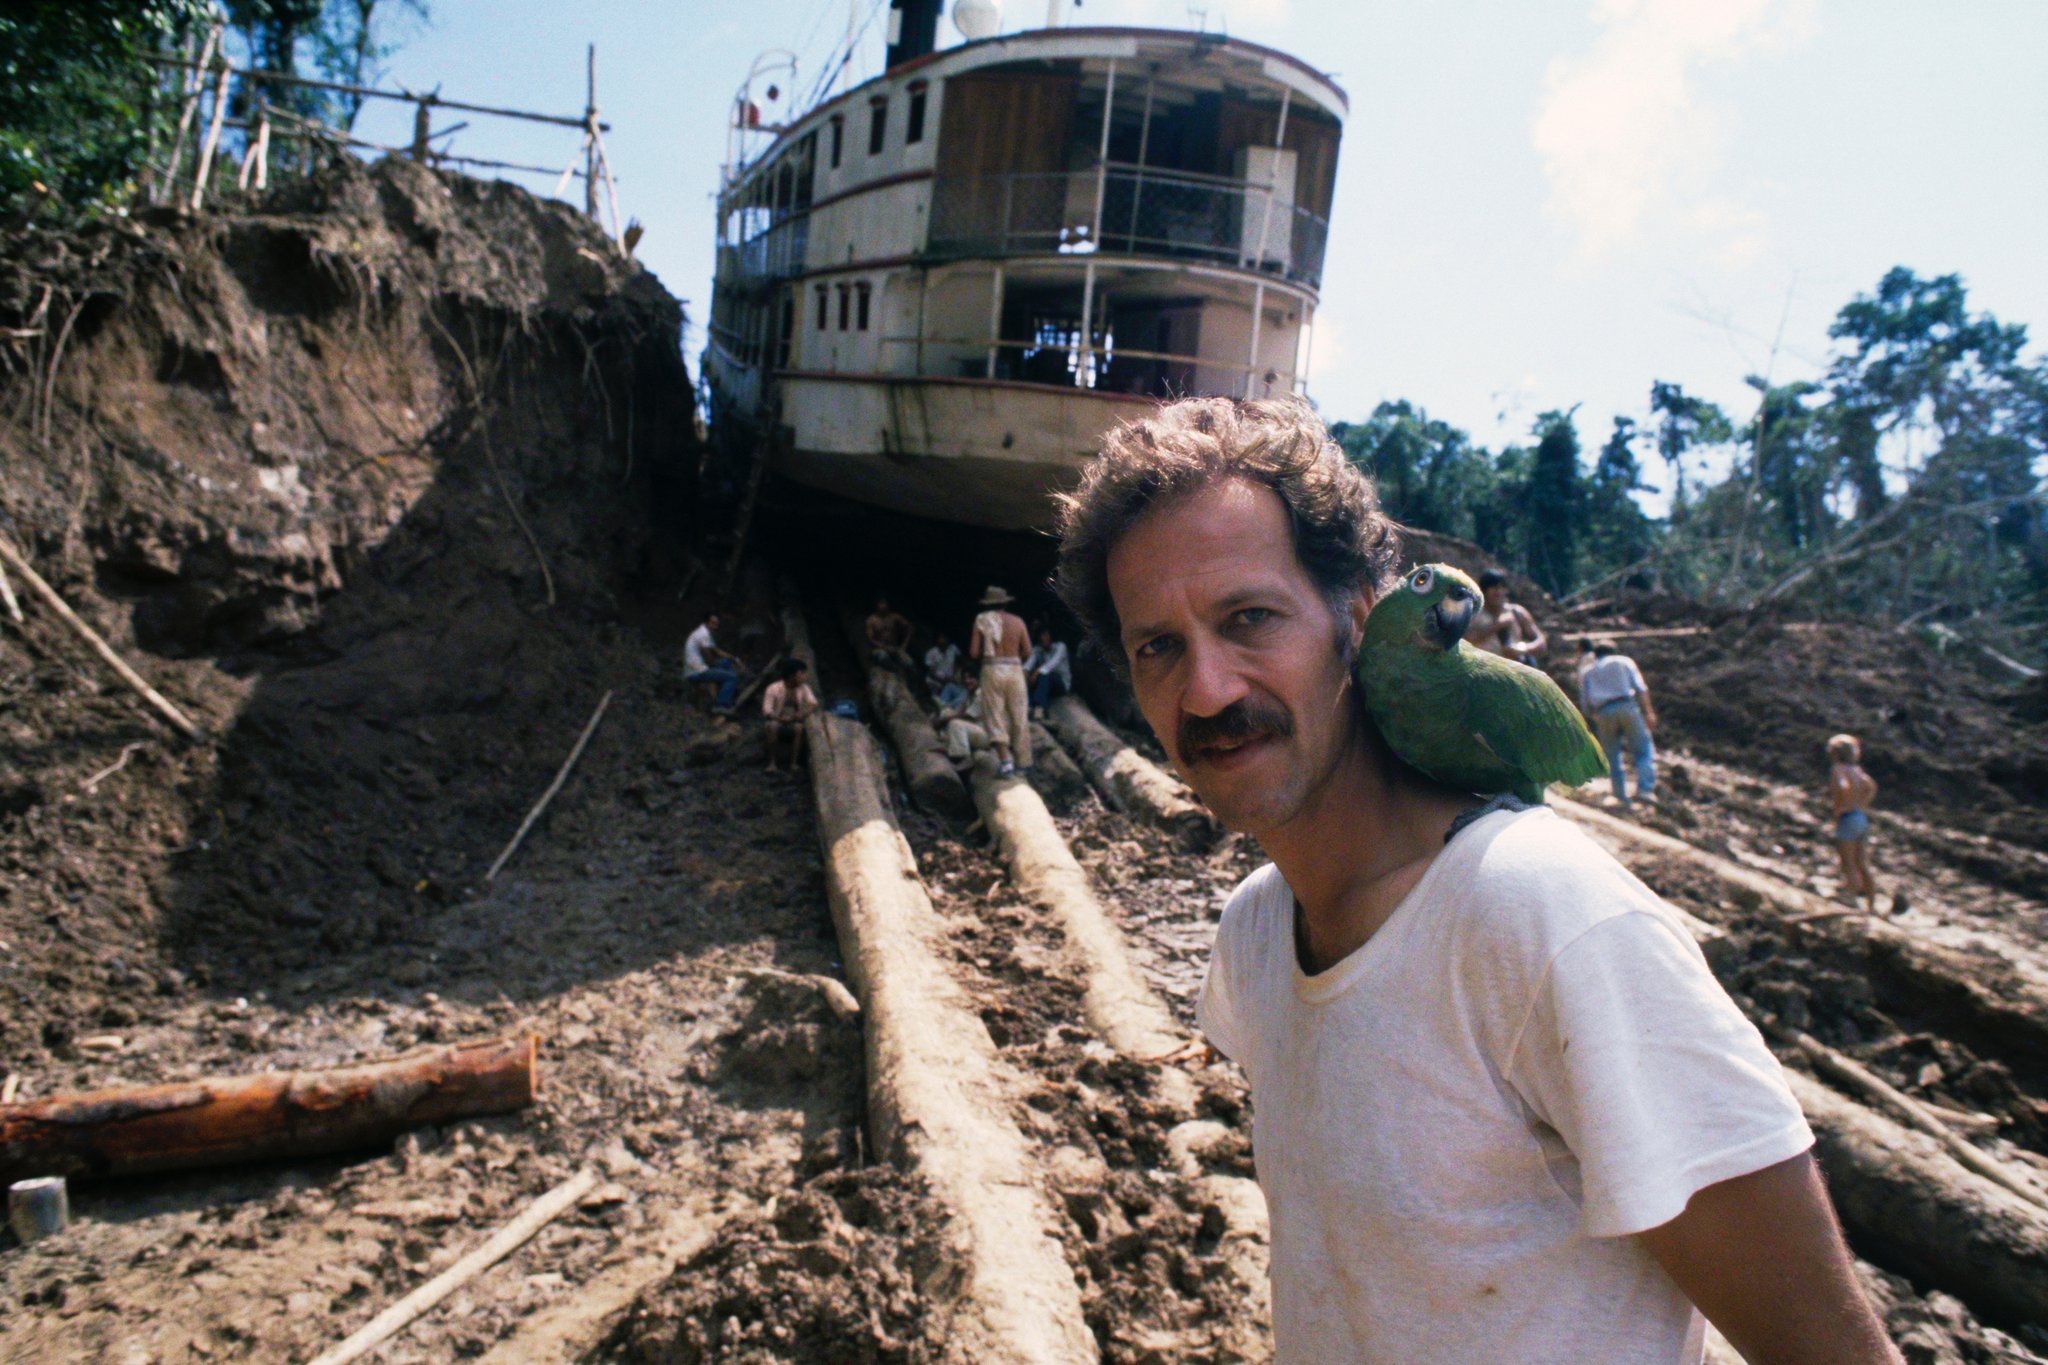 READ >> Werner Herzog has never thought a dog was cute